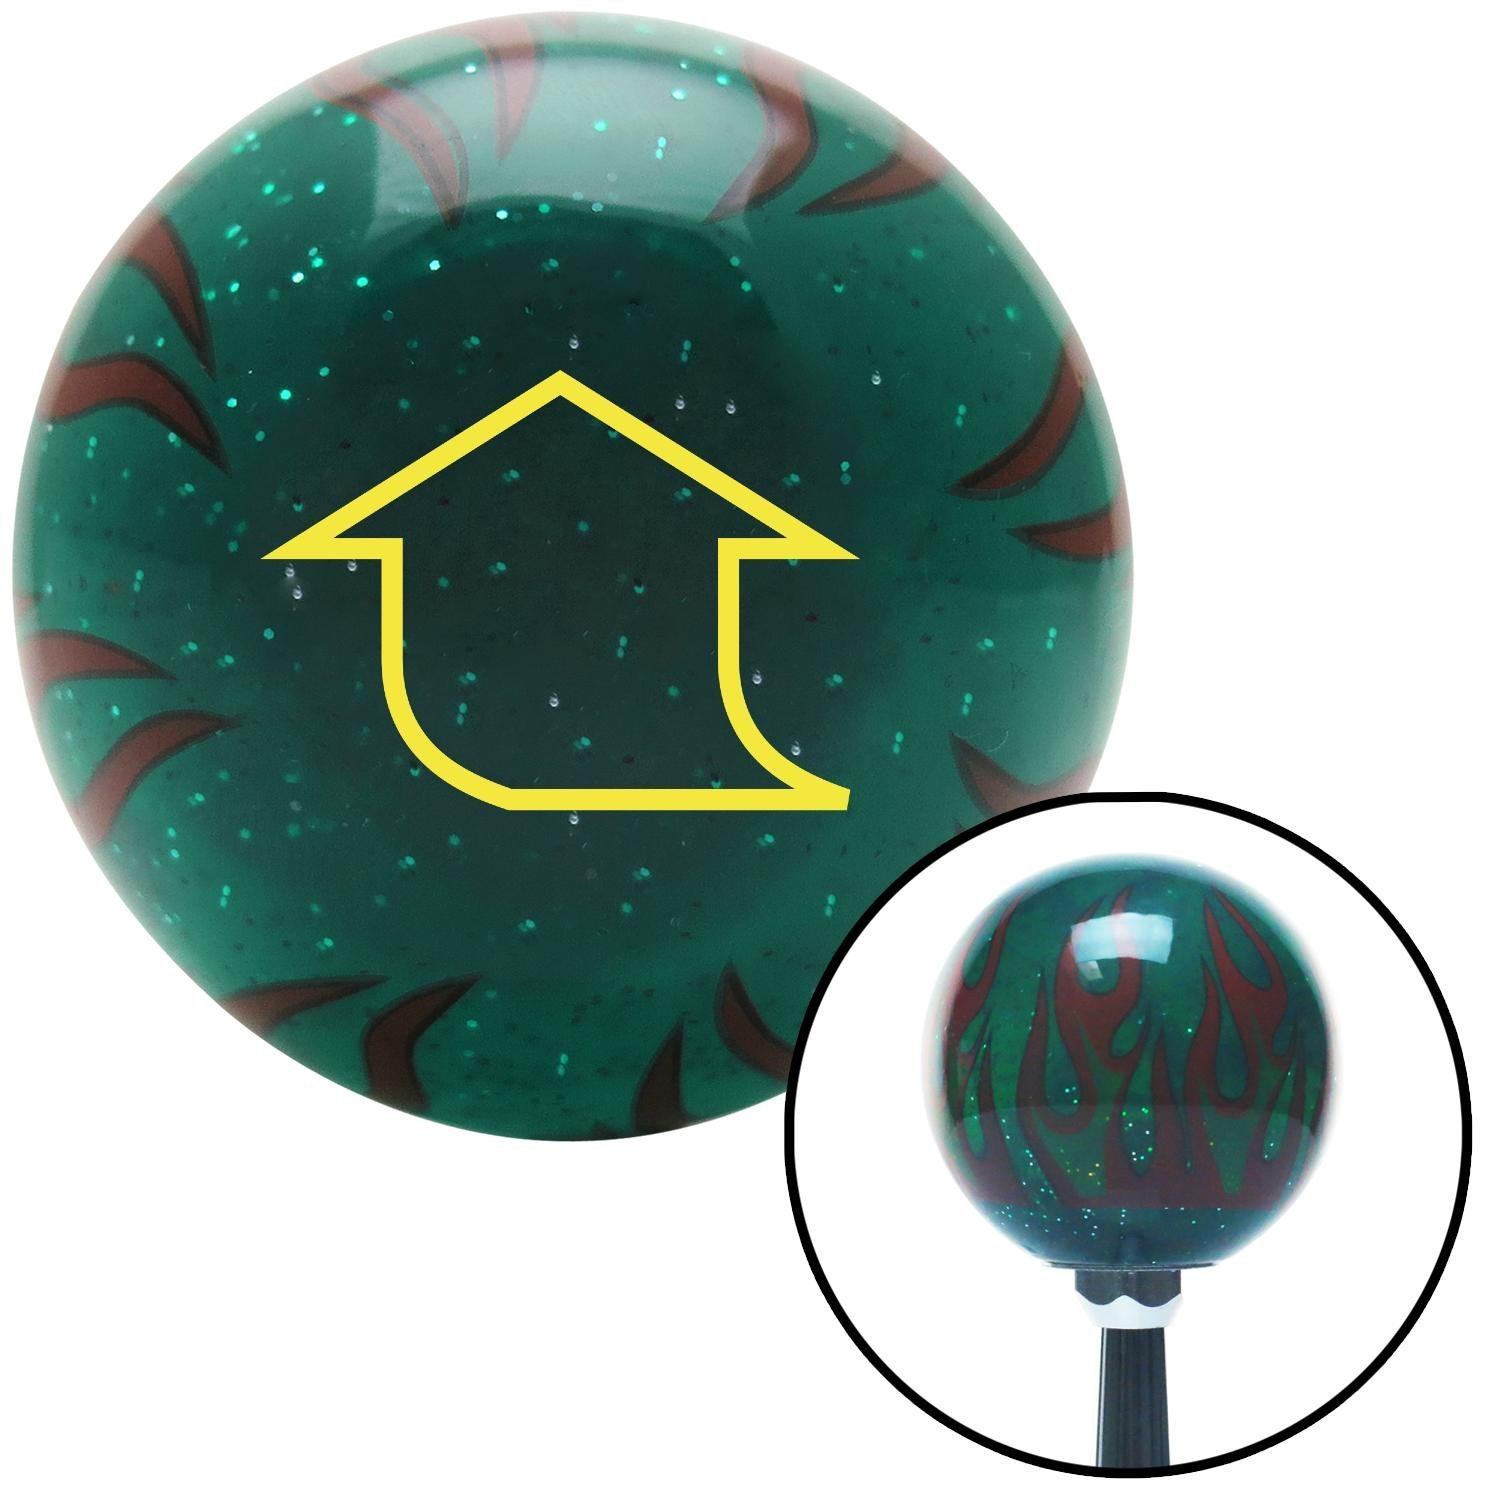 Yellow Fat Empty Arrow Up American Shifter 260975 Green Flame Metal Flake Shift Knob with M16 x 1.5 Insert